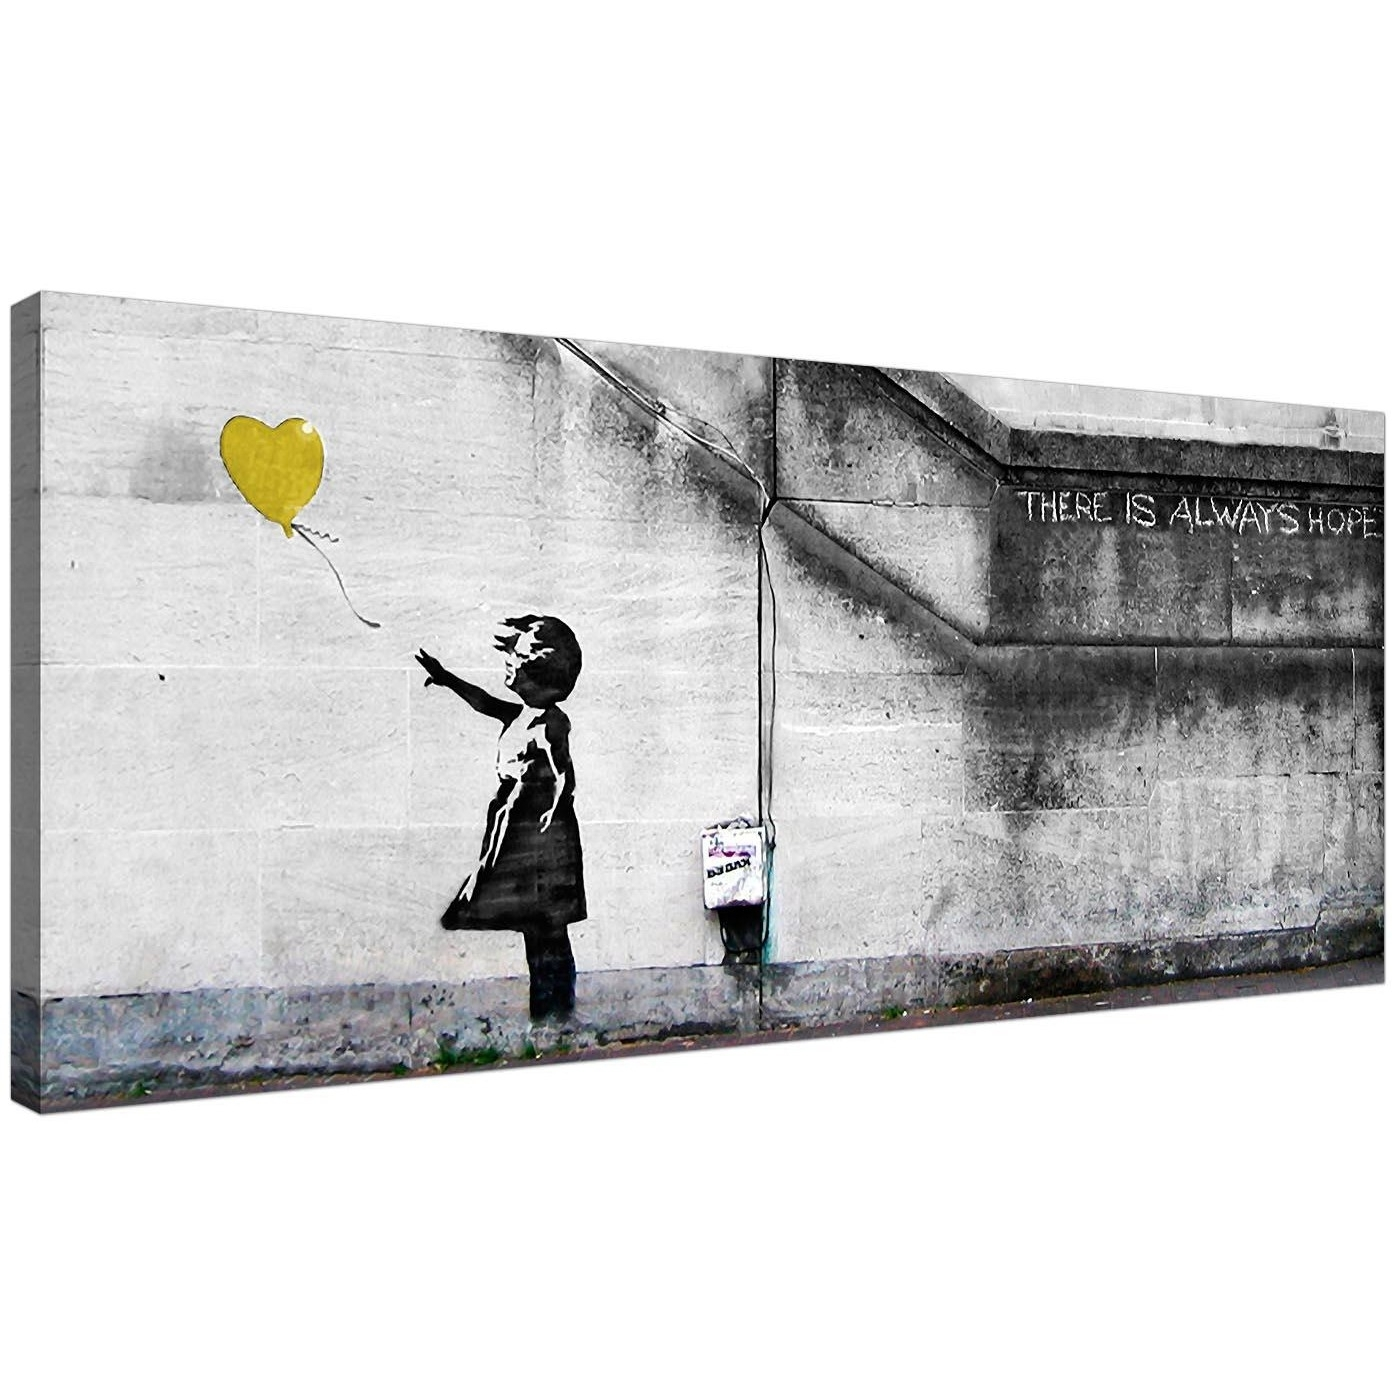 Cheap Yellow Canvas Art Of Banksy Balloon Girl Within 2018 Yellow Wall Art (View 3 of 20)